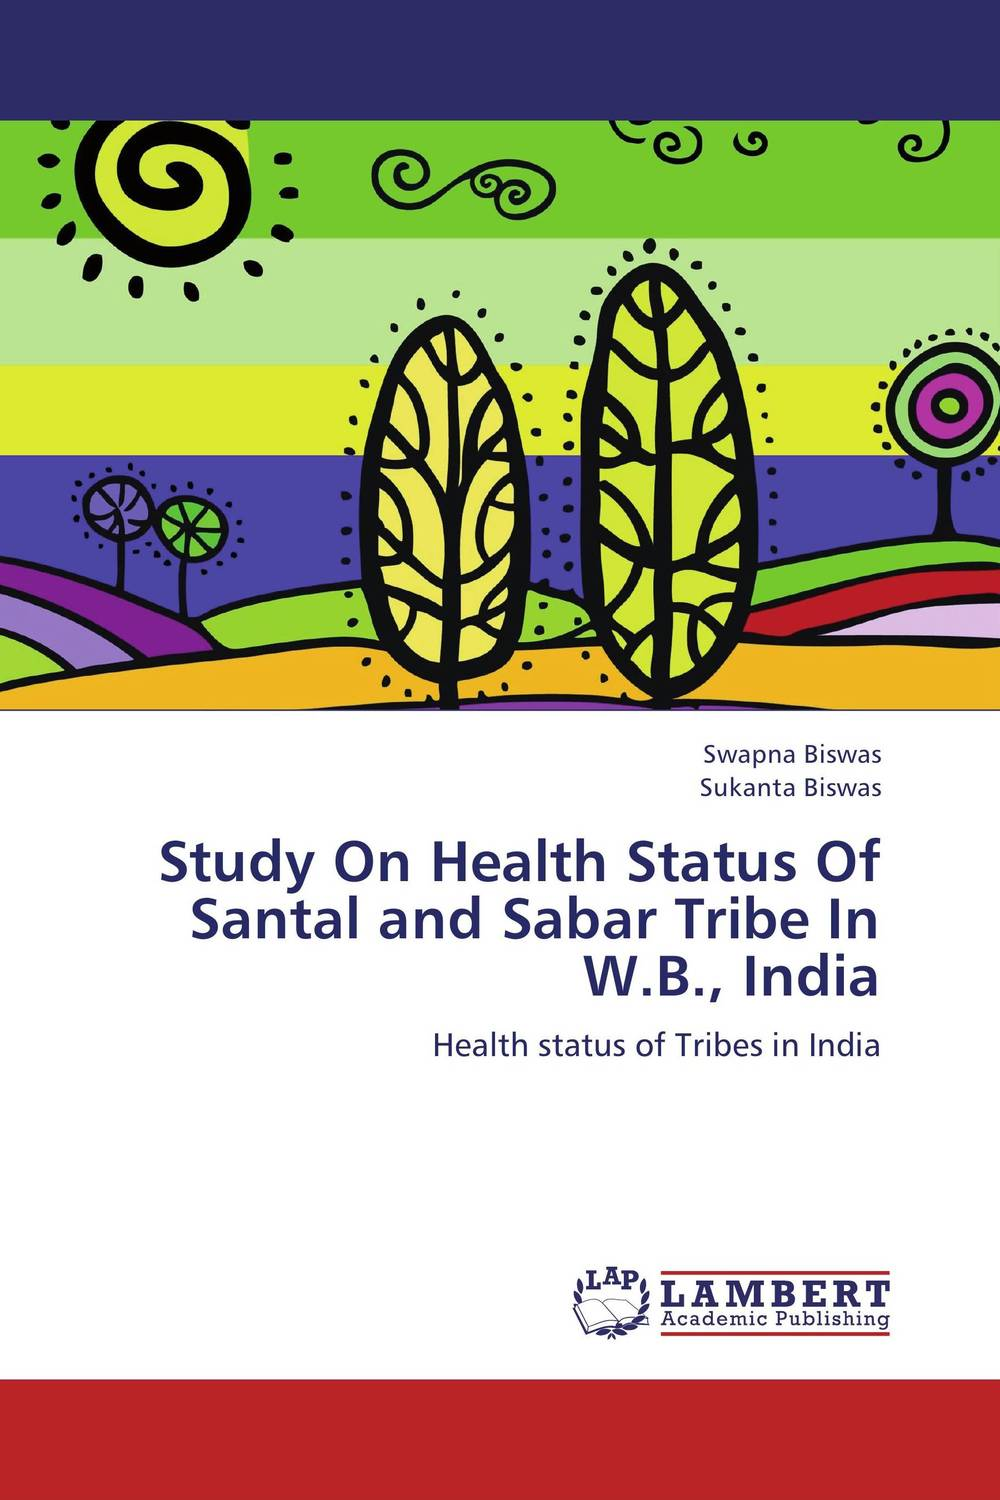 Study On Health Status Of Santal and Sabar Tribe In W.B., India reena garbyal alka goel and isha tyagi traditional costumes of rung tribe bhotiya in uttarakhand india